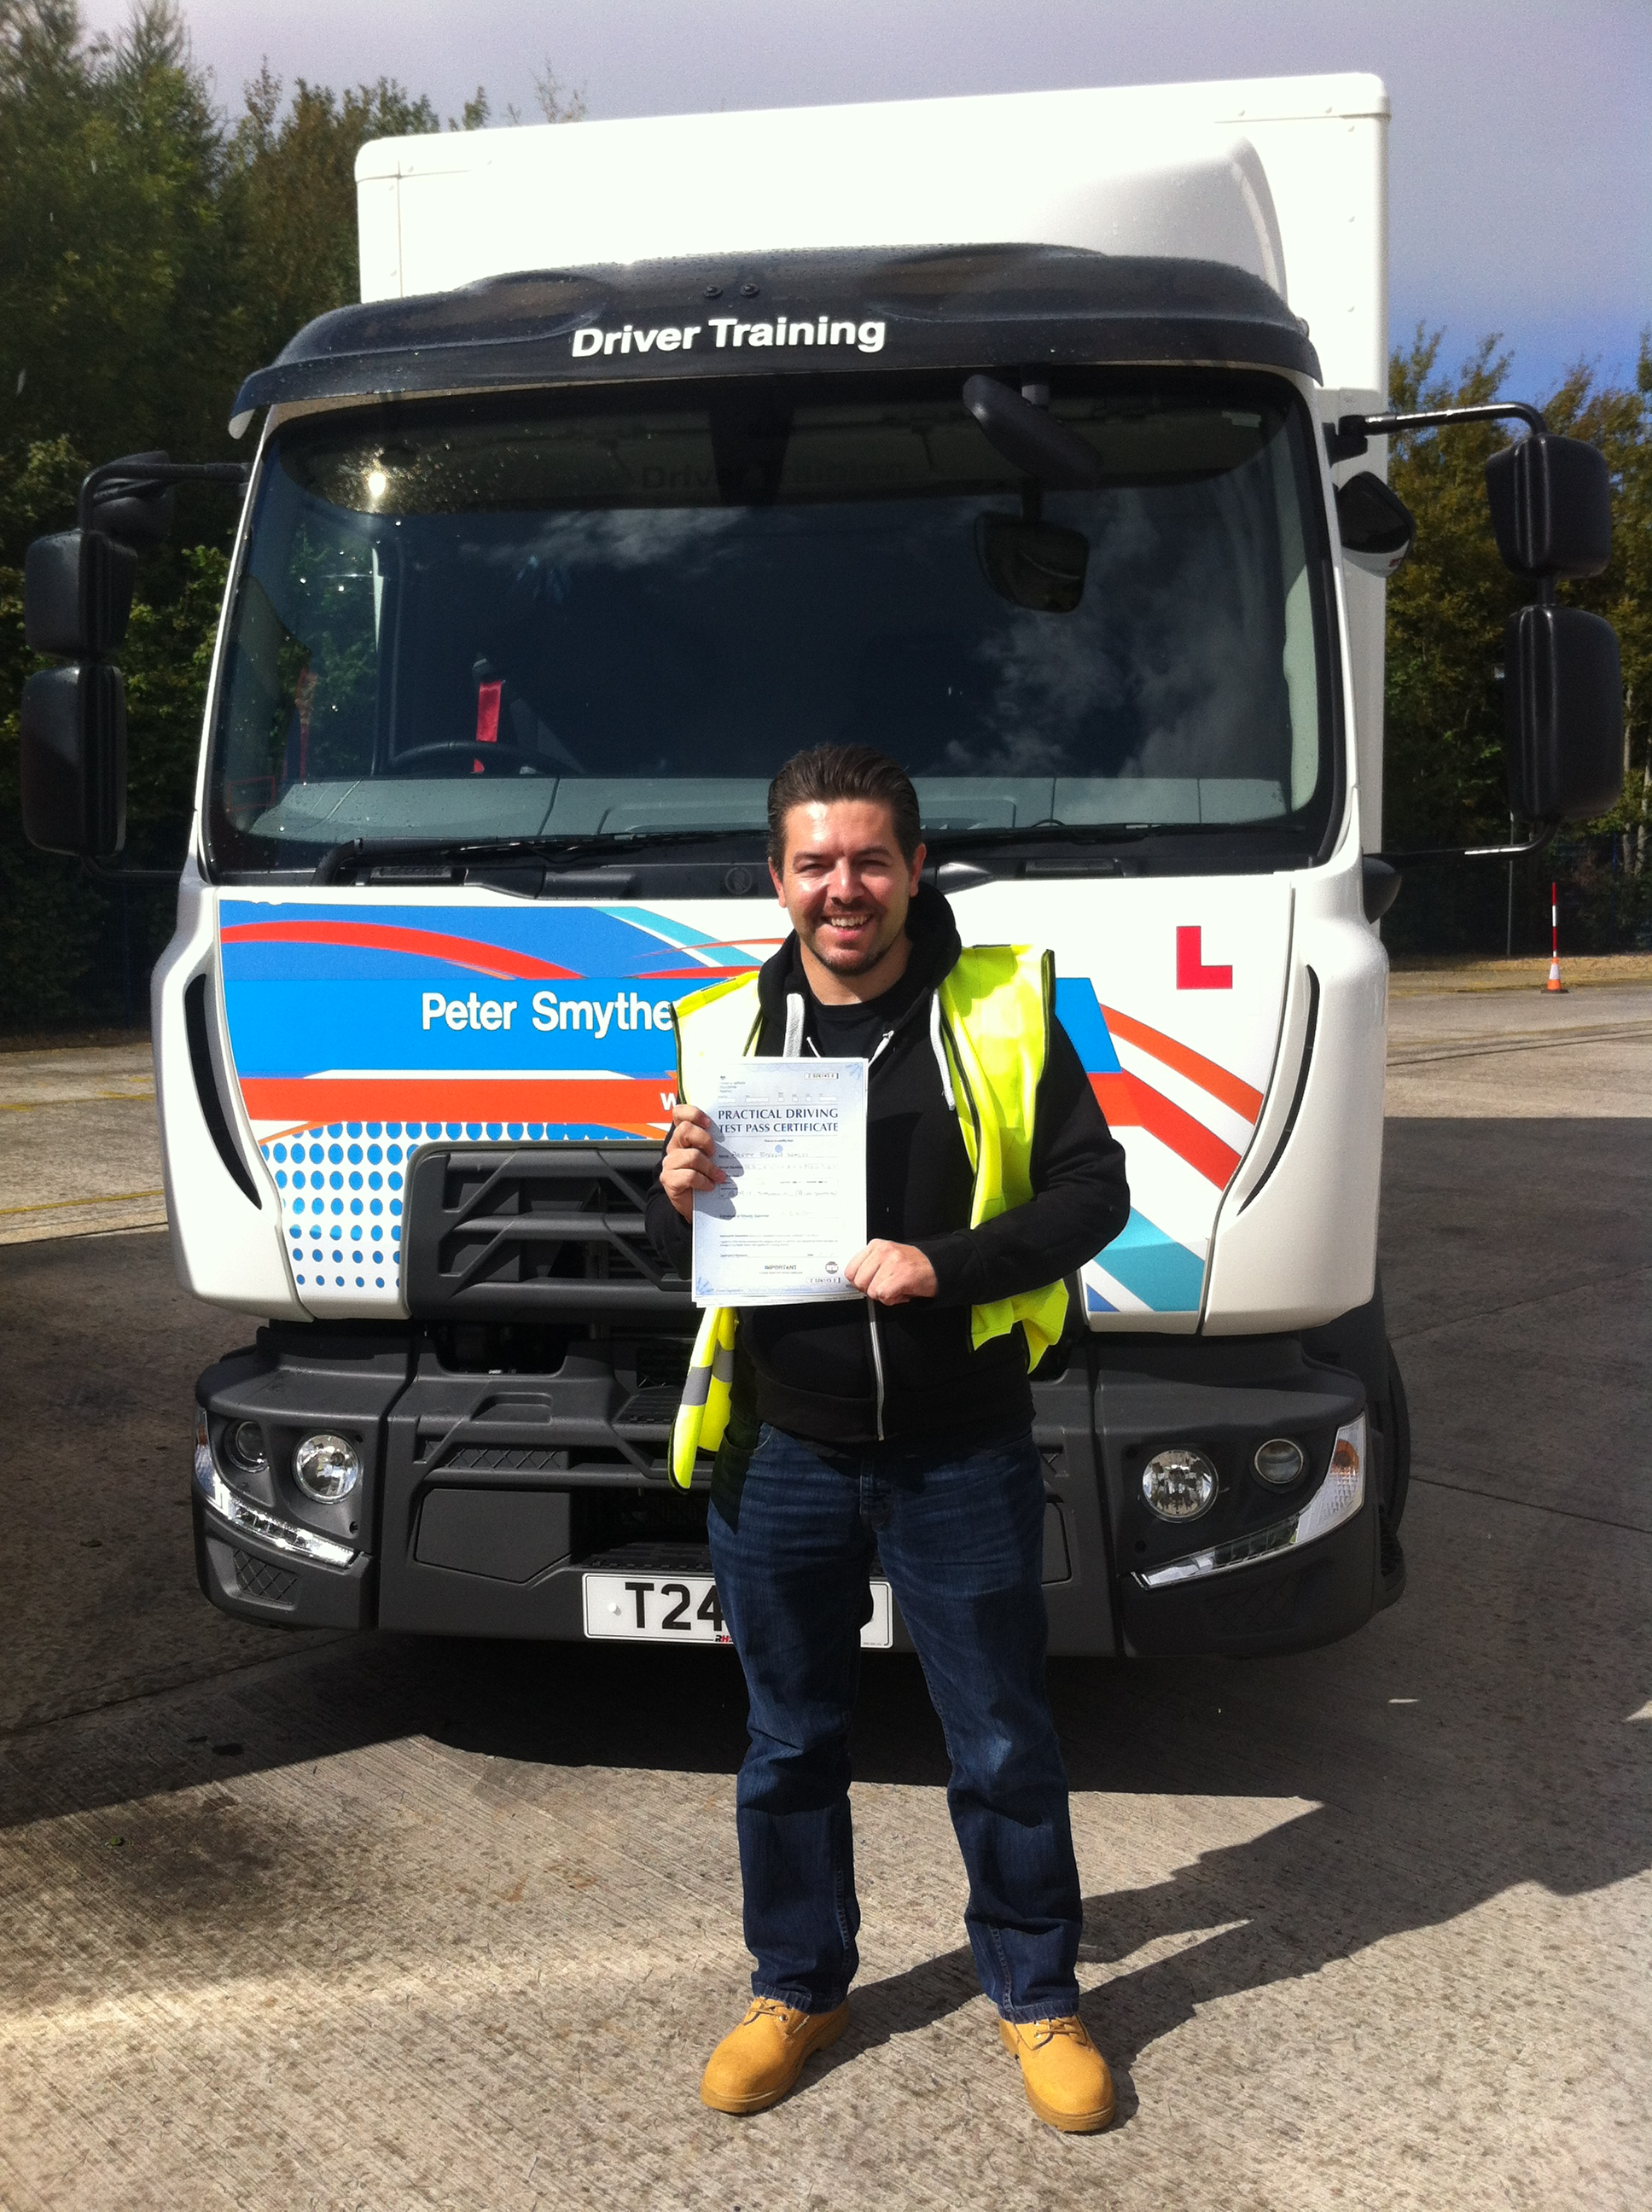 Brett Wales from Nottingham PASSED his CAT C TEST#Ipassedwithpstt Brett is the first PASS in our NEW TRUCK